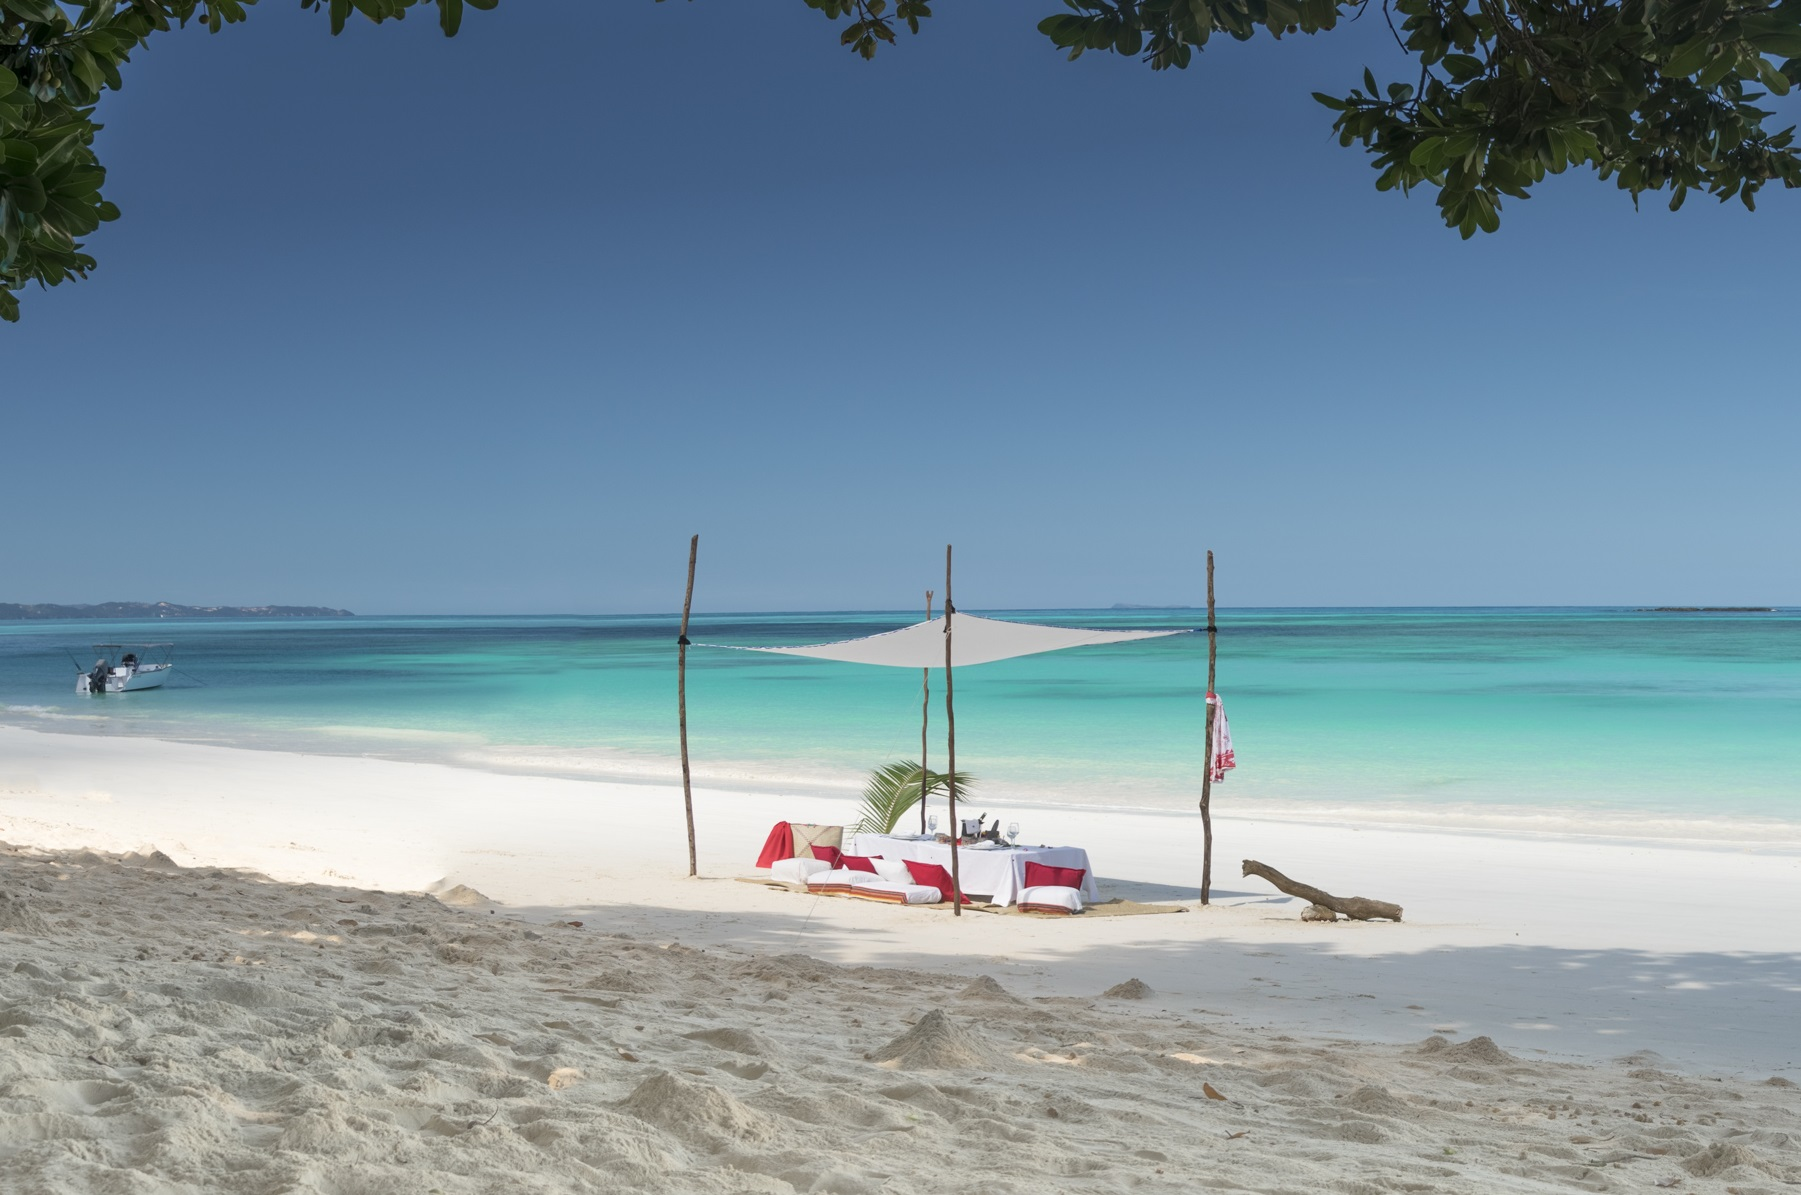 Tsara-komba-lodge-nosy-be-madagascar-wadi-destination-beach.jpg